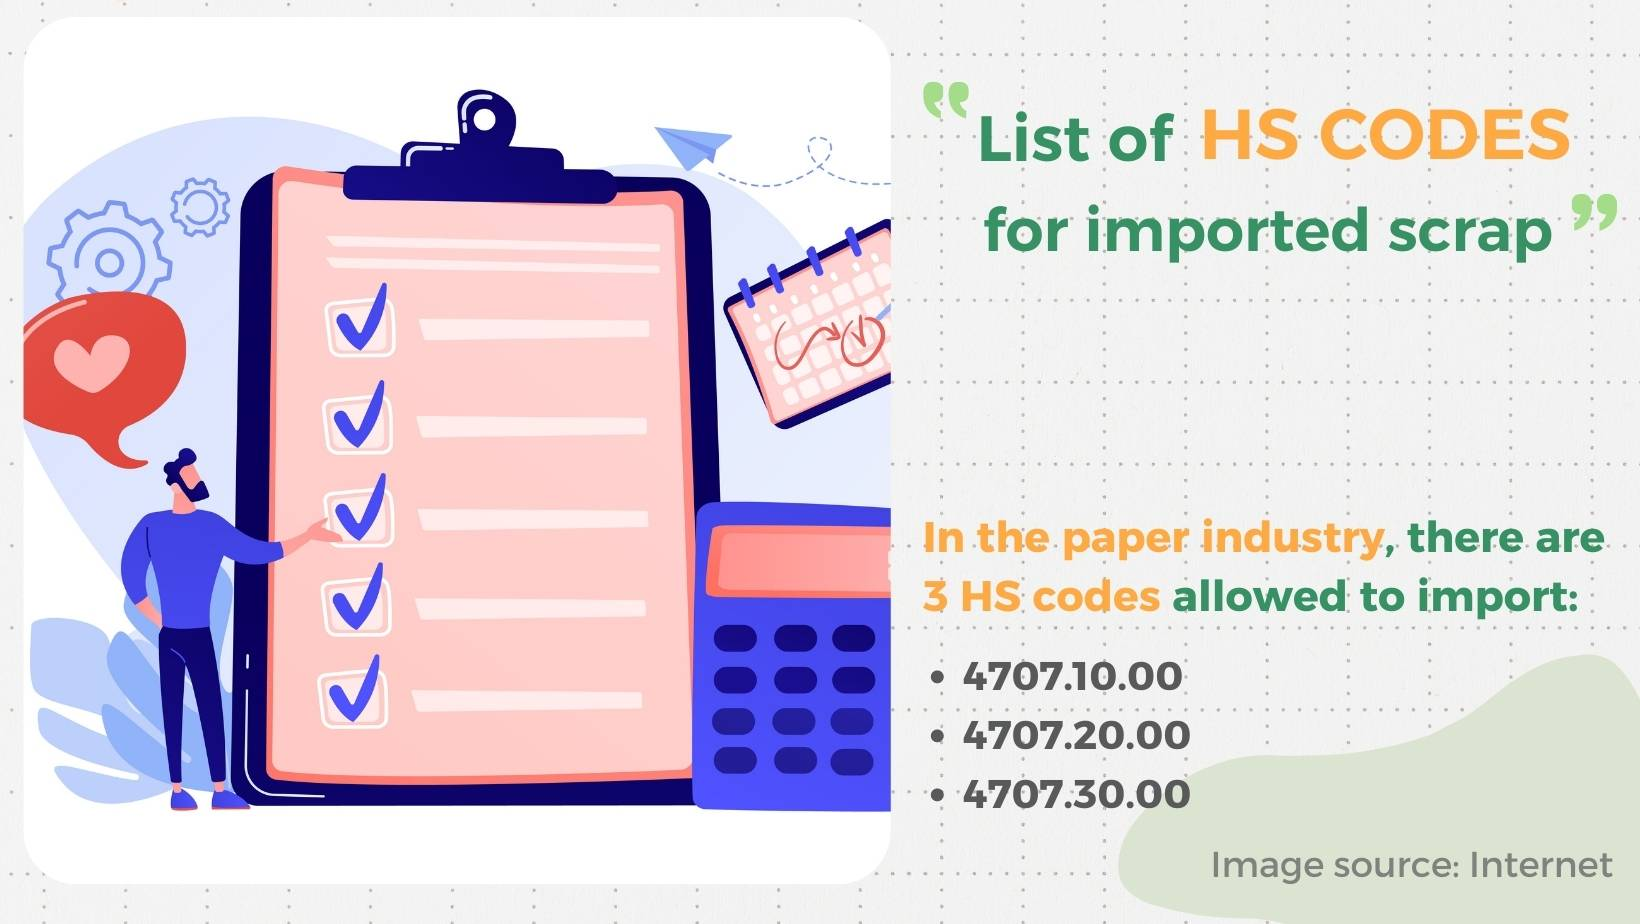 HS codes for imported scrap in paper industry